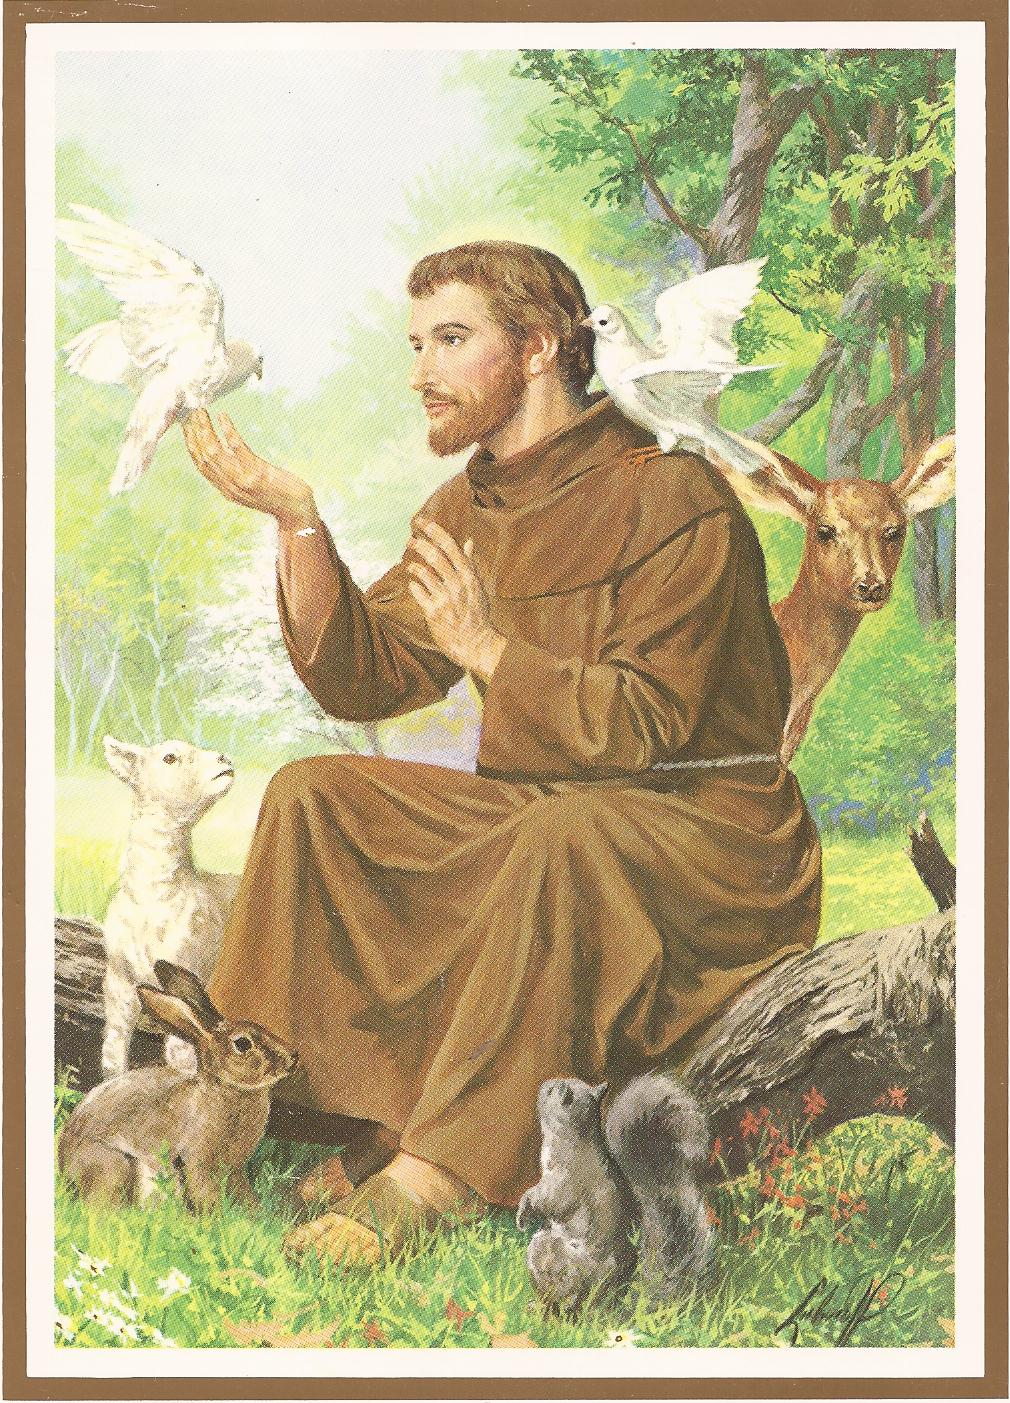 St. Francis of Assisi, the patron saint of animals